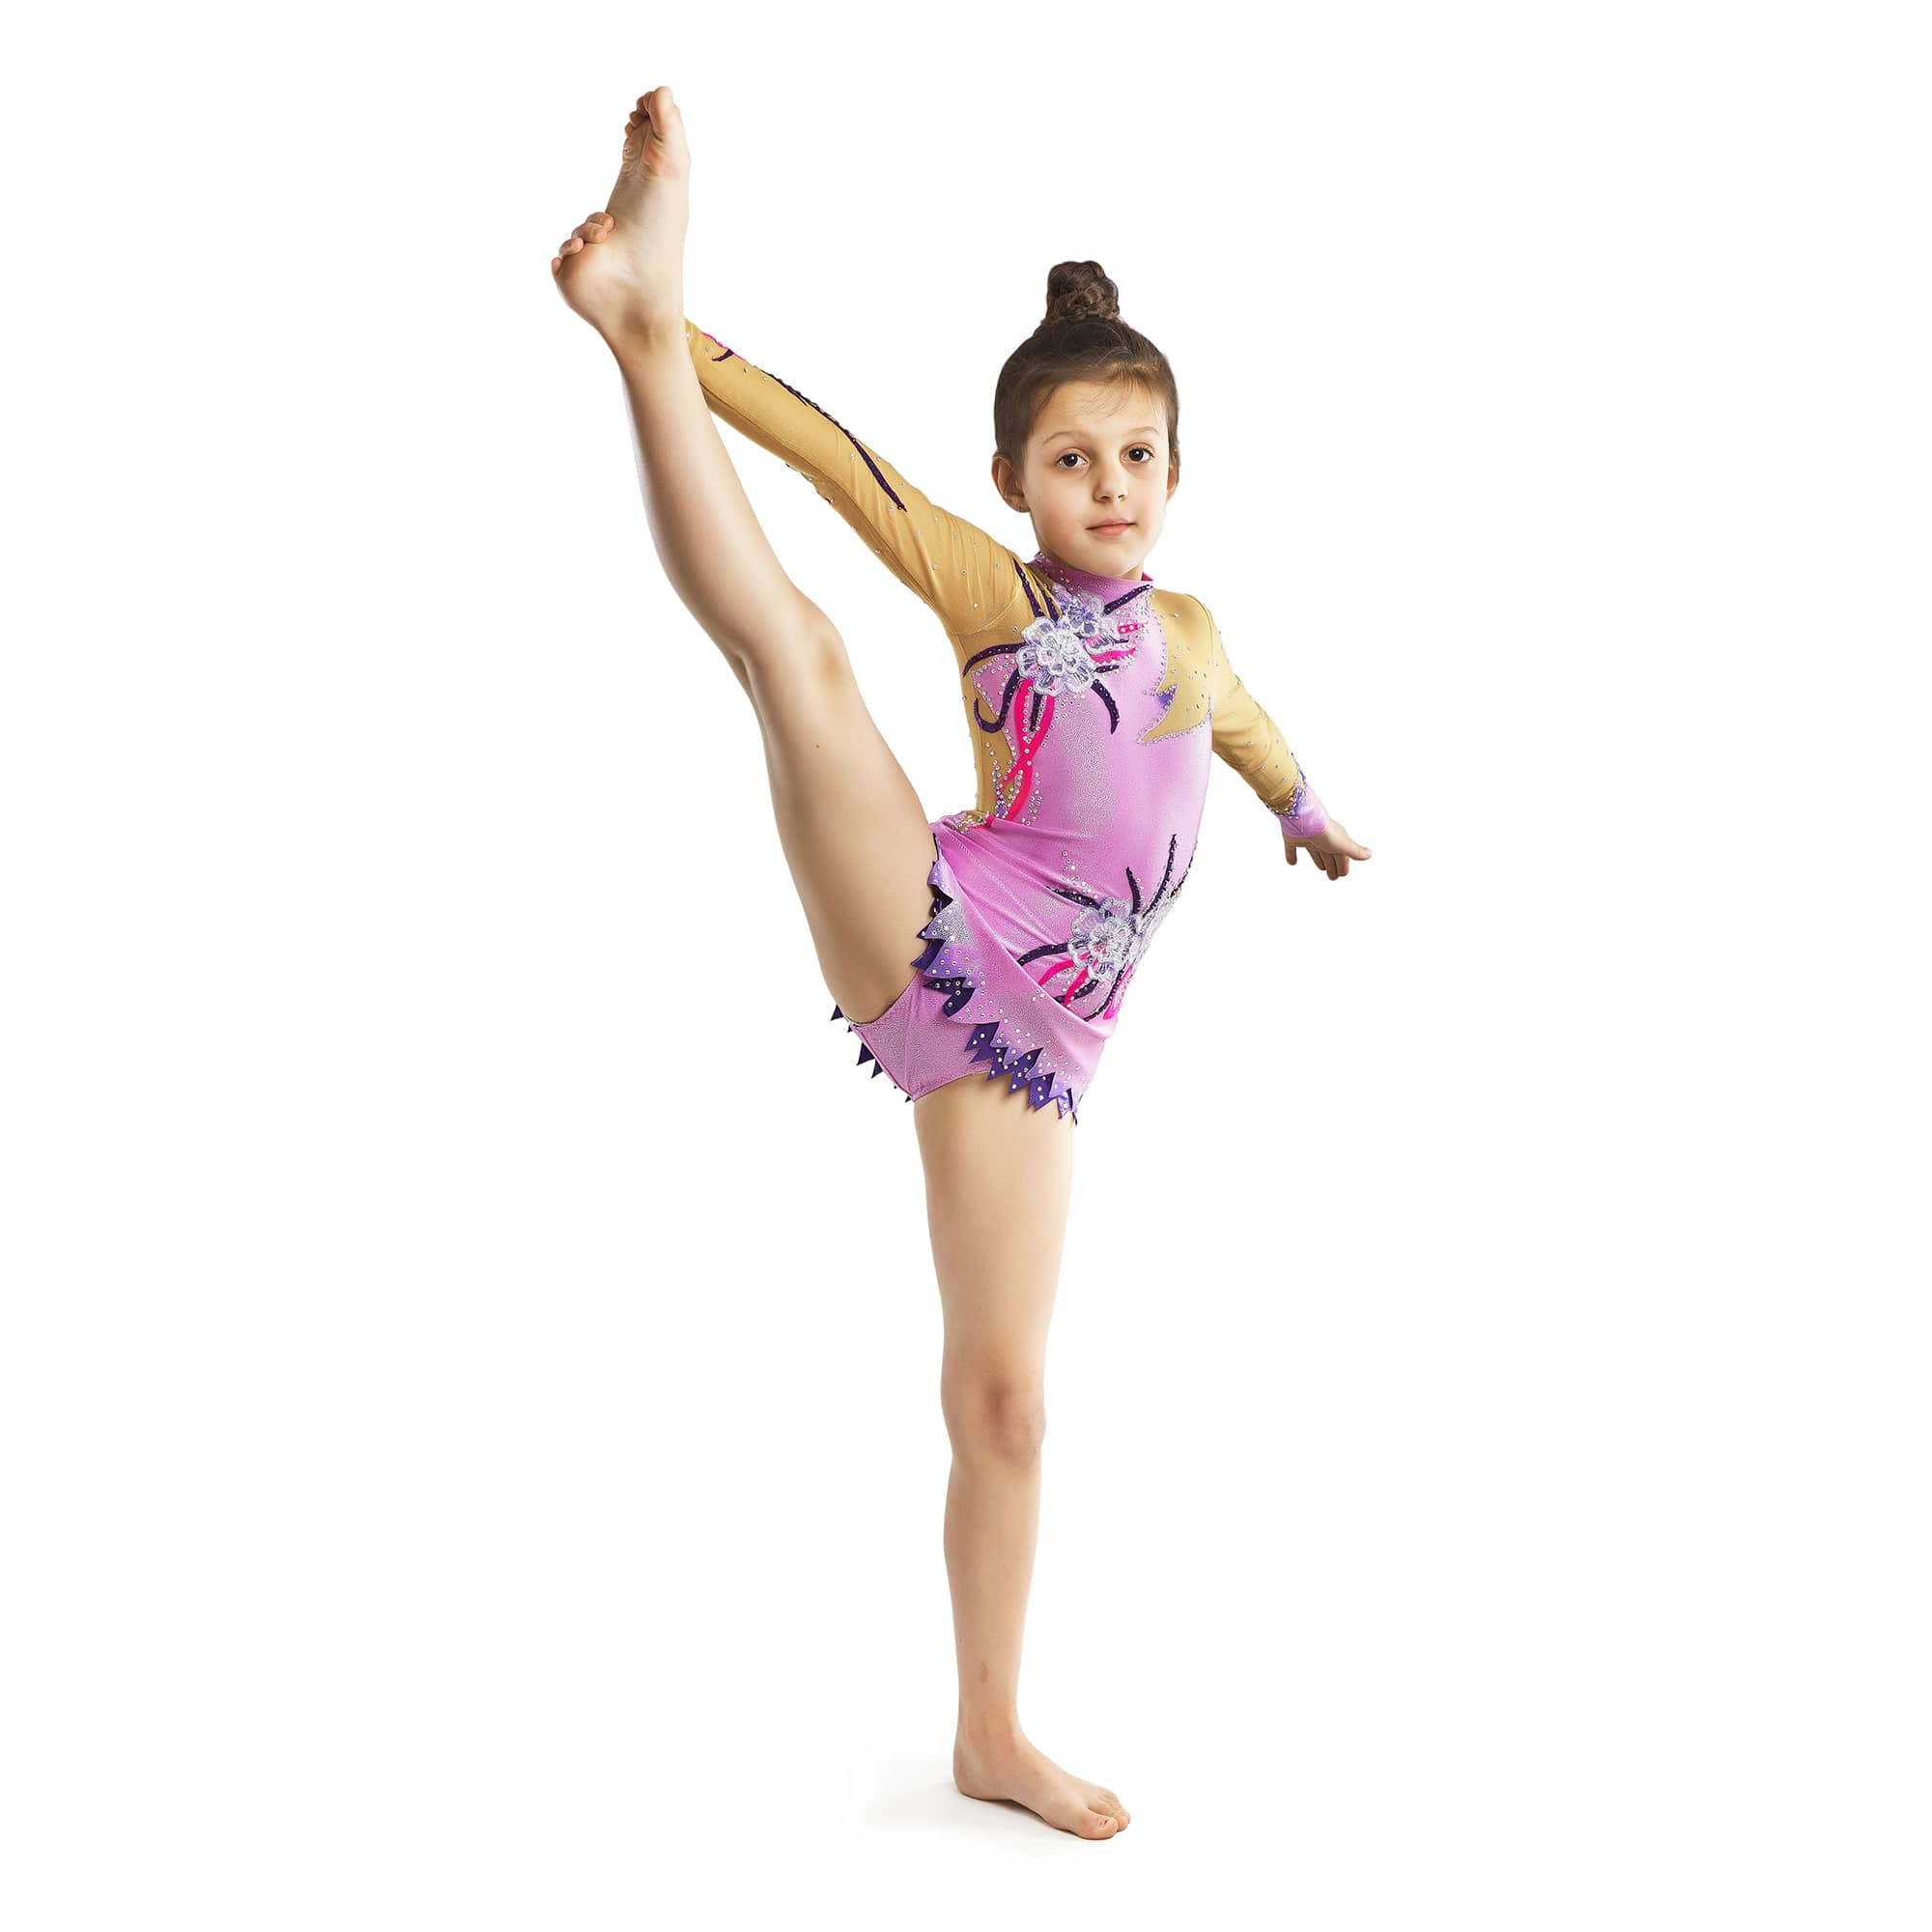 The gymnast with raised leg in lilac, dark purple, magento gymnastics leotard № 165 for competitions